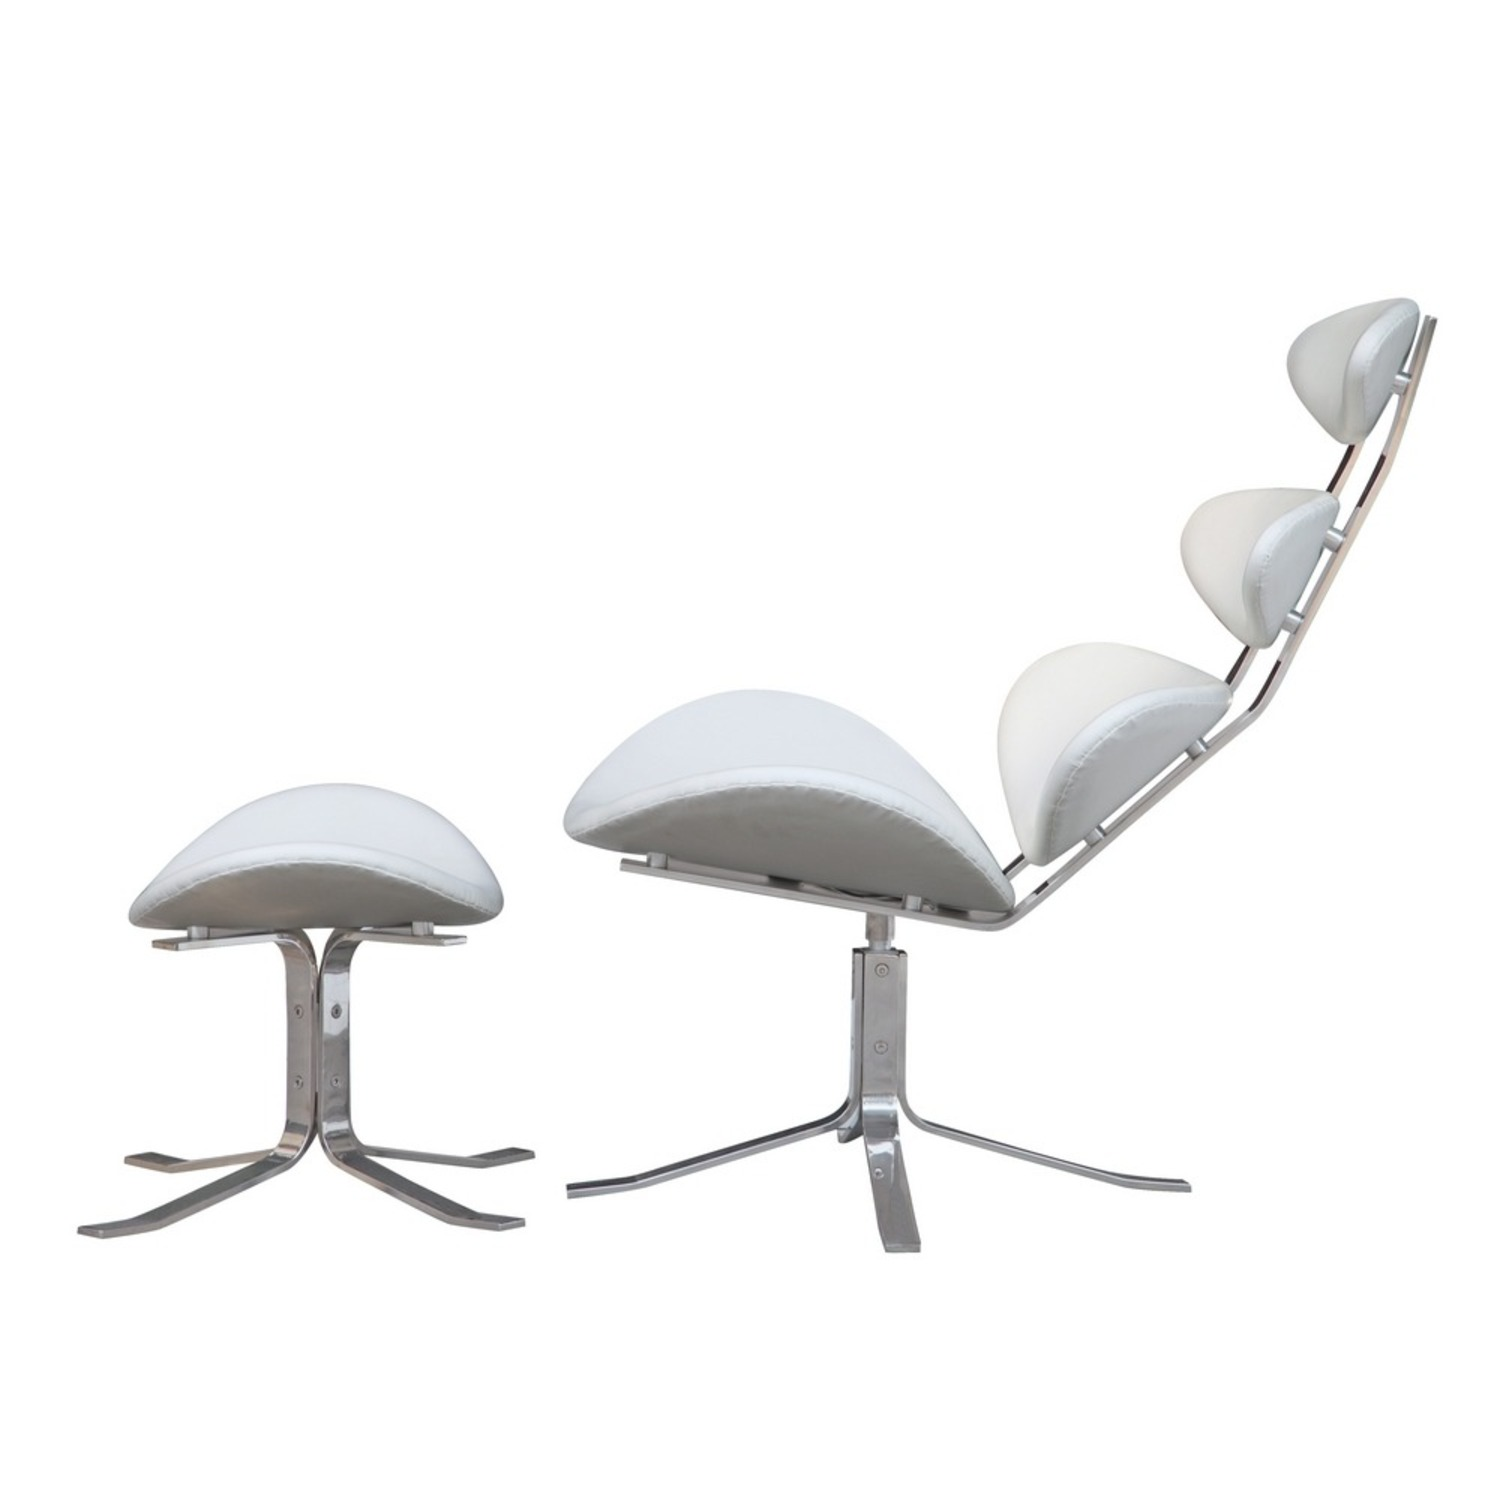 Chair & Ottoman In White Leather Sculptured Form - image-3